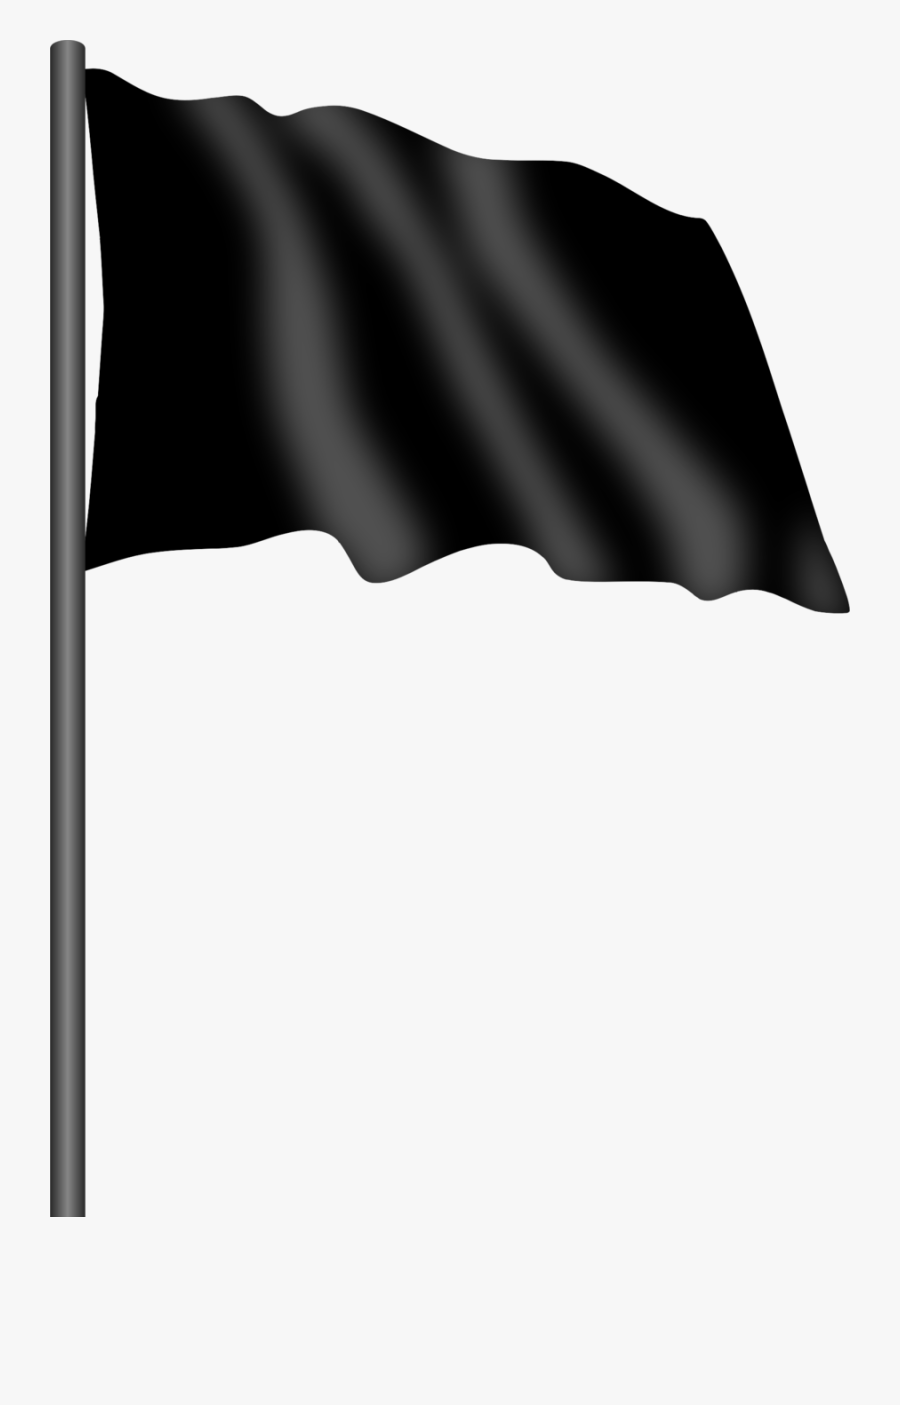 Motor Racing Flag - Black Flag Icon Png, Transparent Clipart